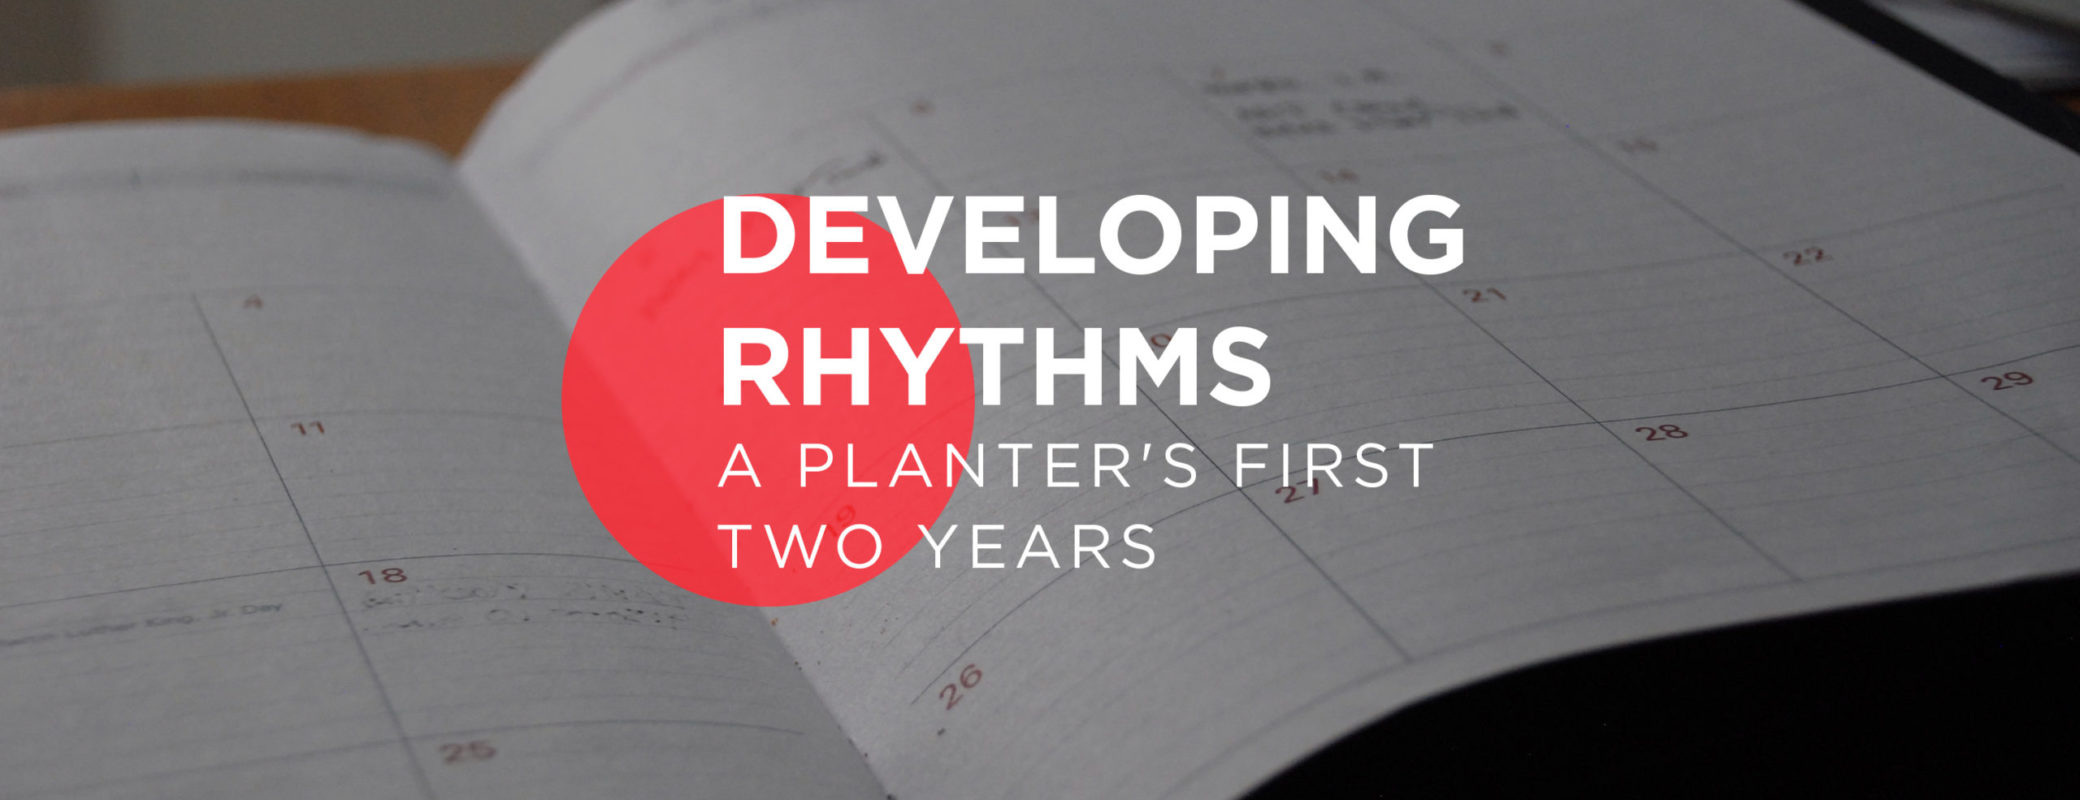 How Do I Establish Rhythms Now That I Completely Control My Schedule?